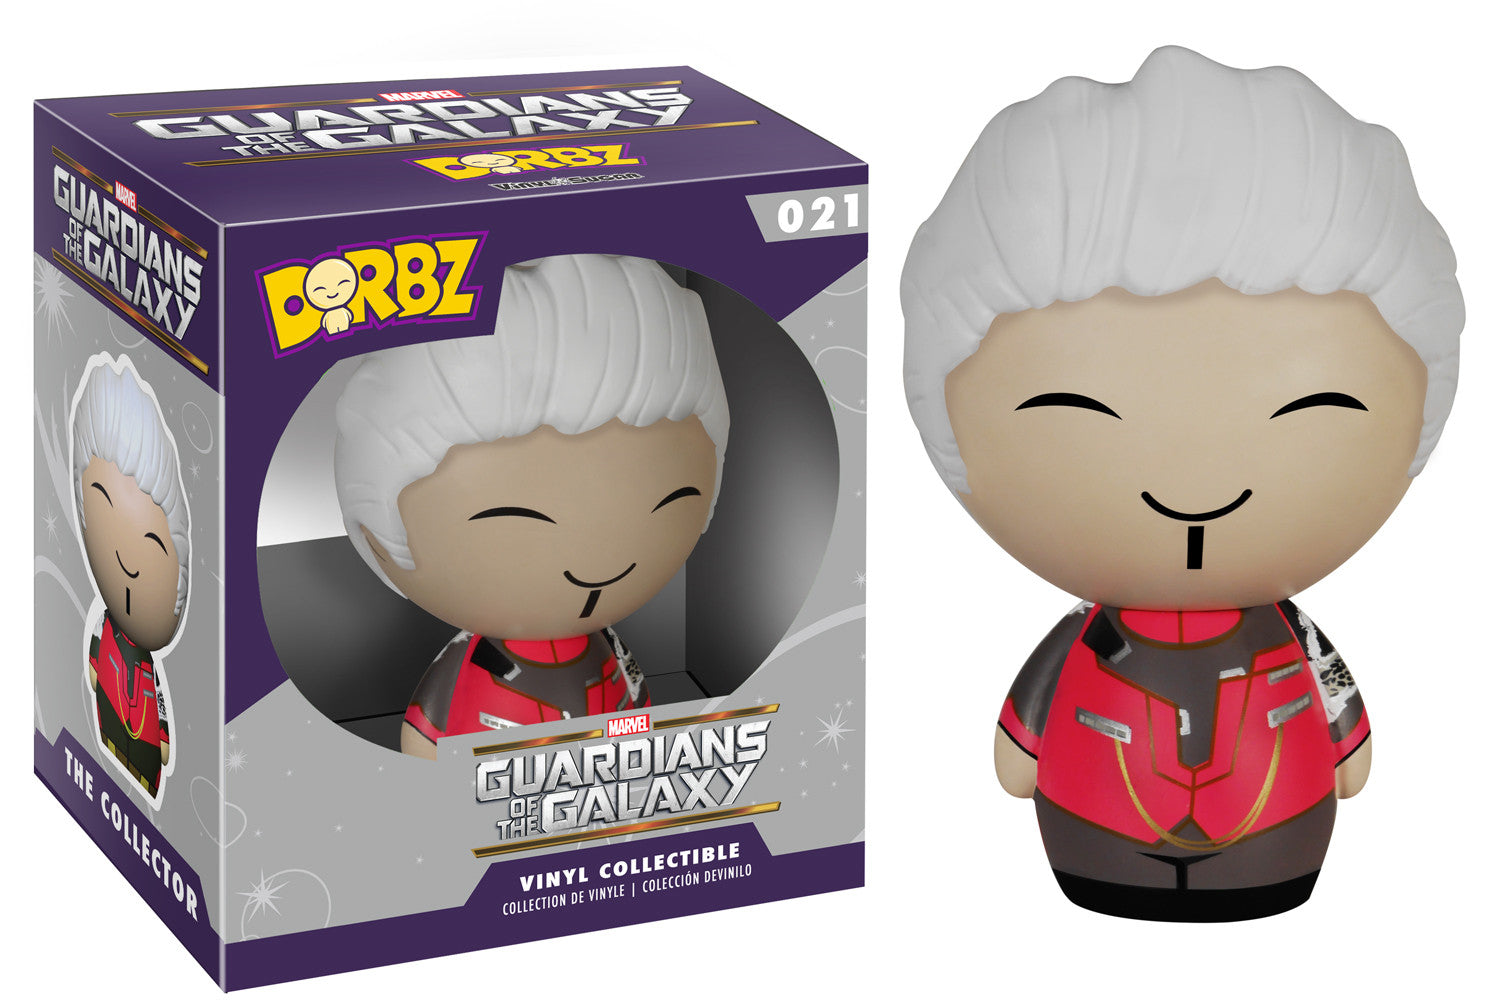 The Collector Guardians of the Galaxy Funko Dorbz